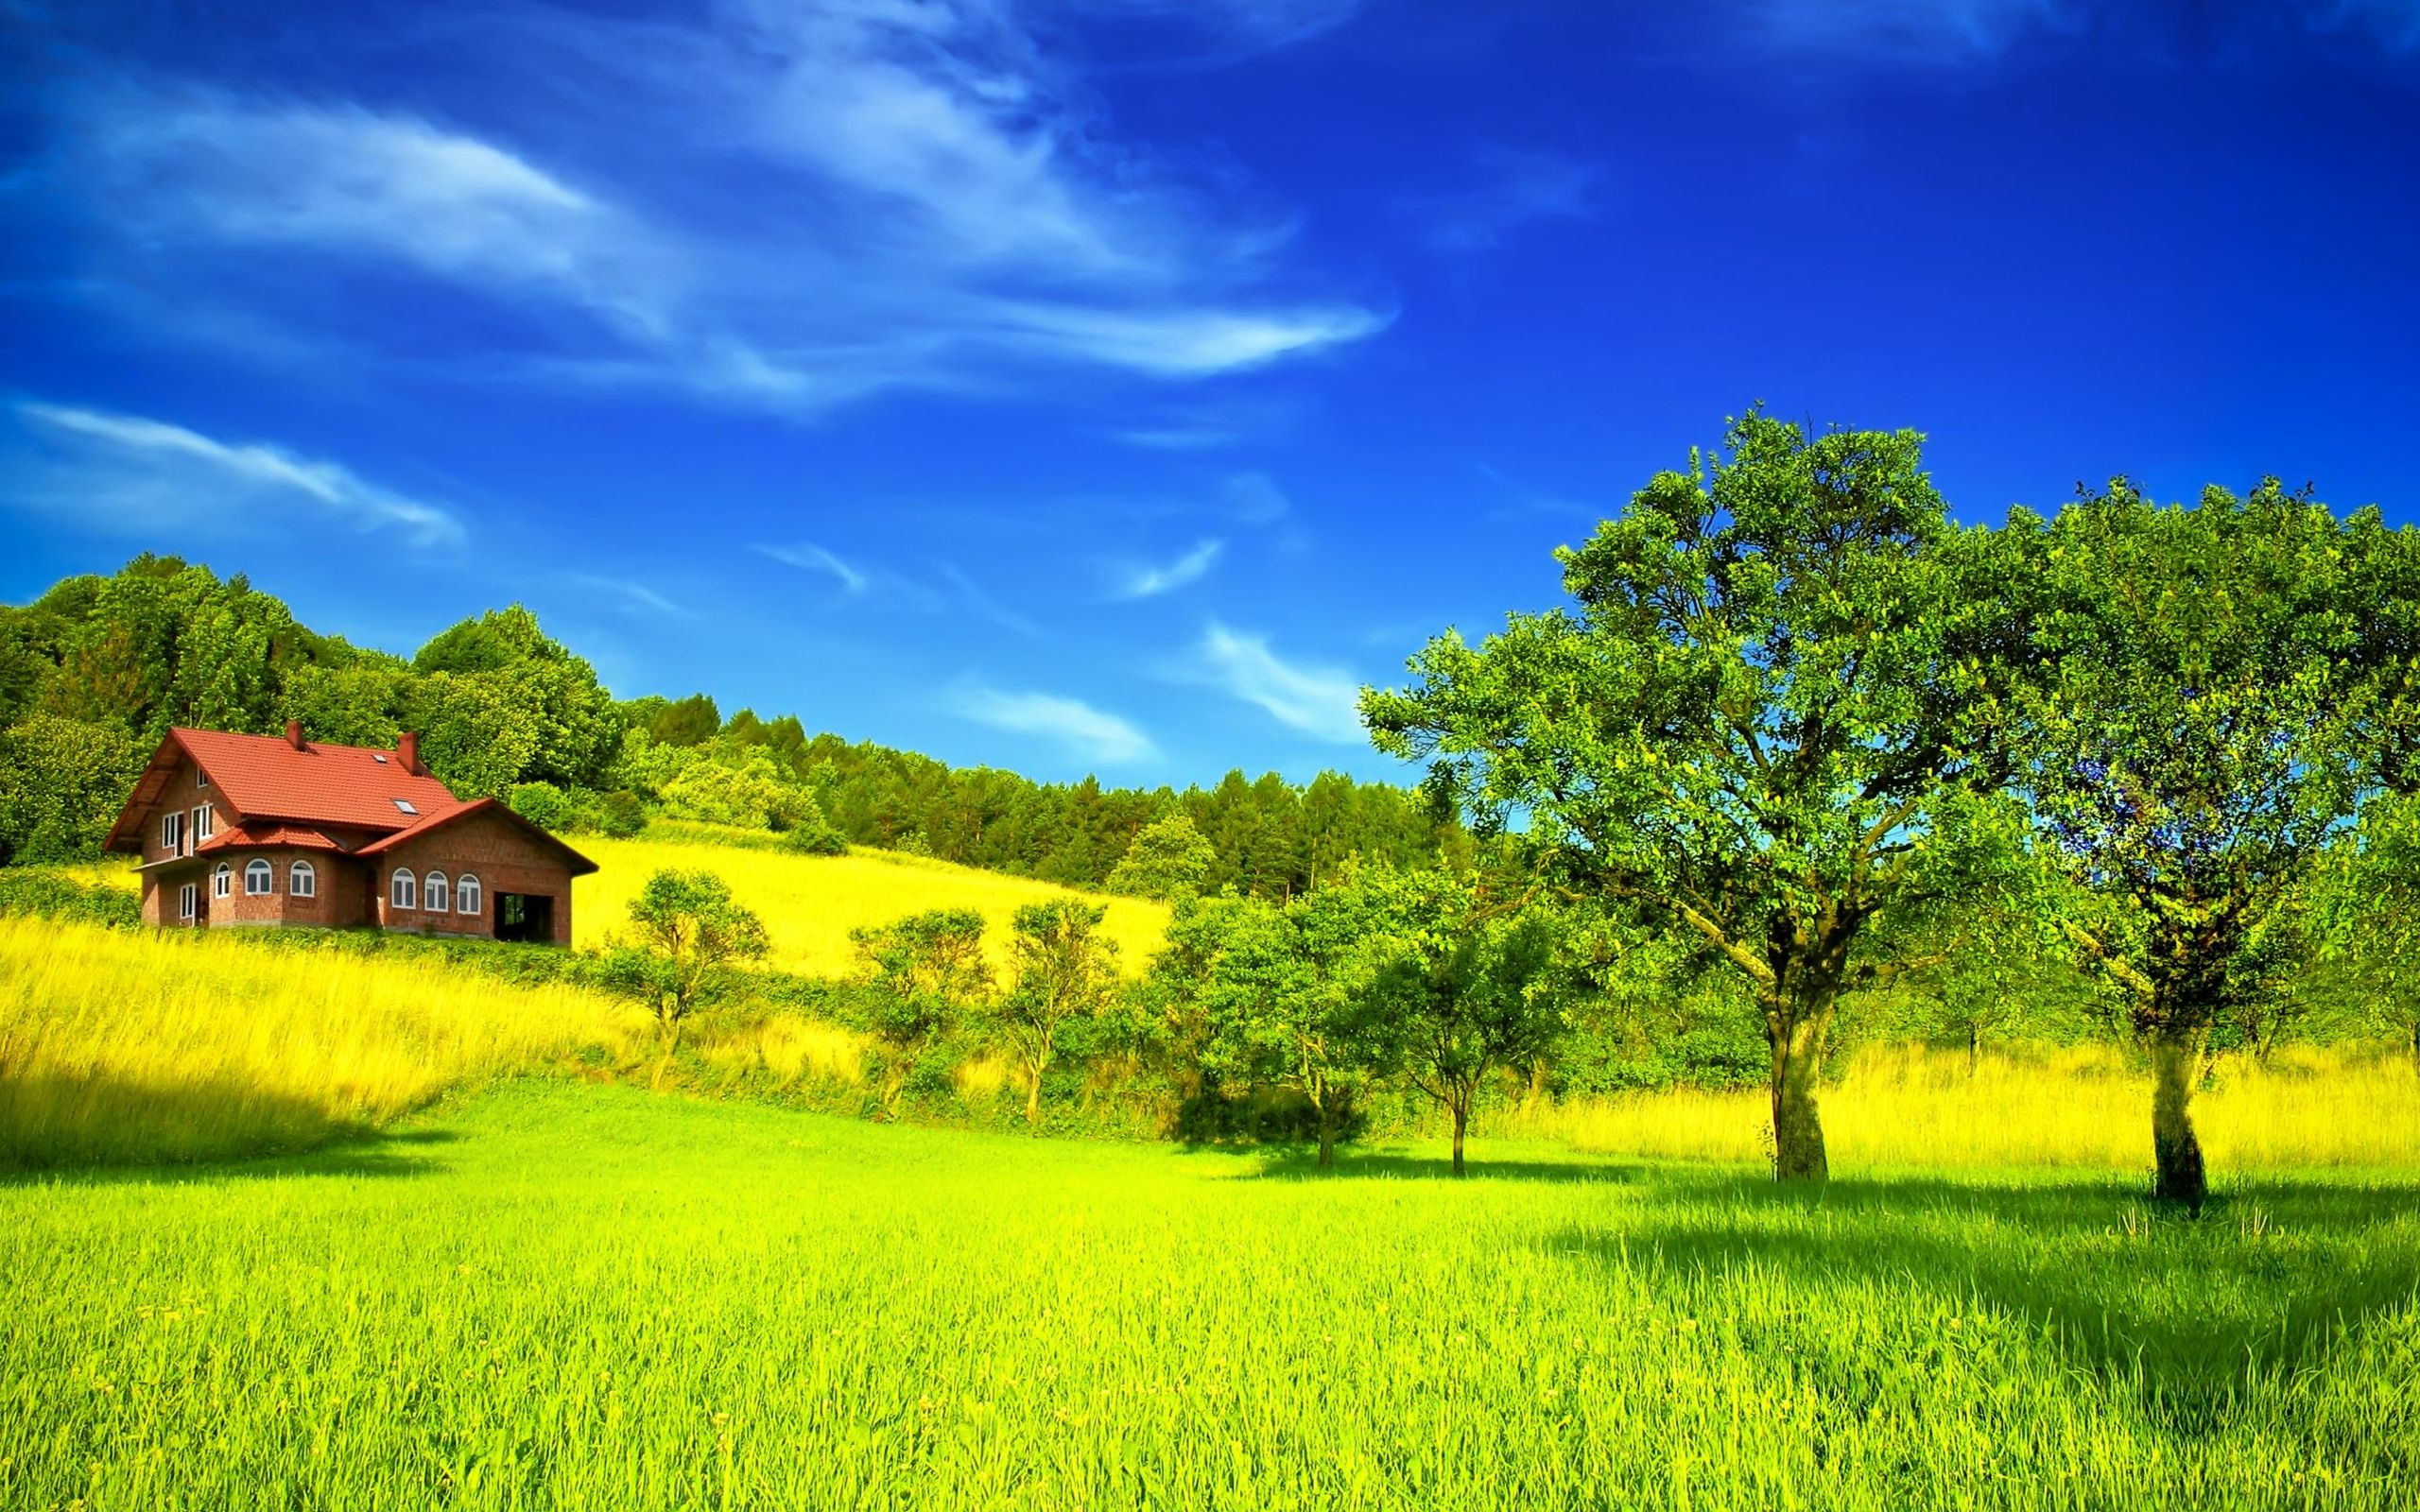 Dream Summer 2012peaceful place is a great wallpaper for your 141